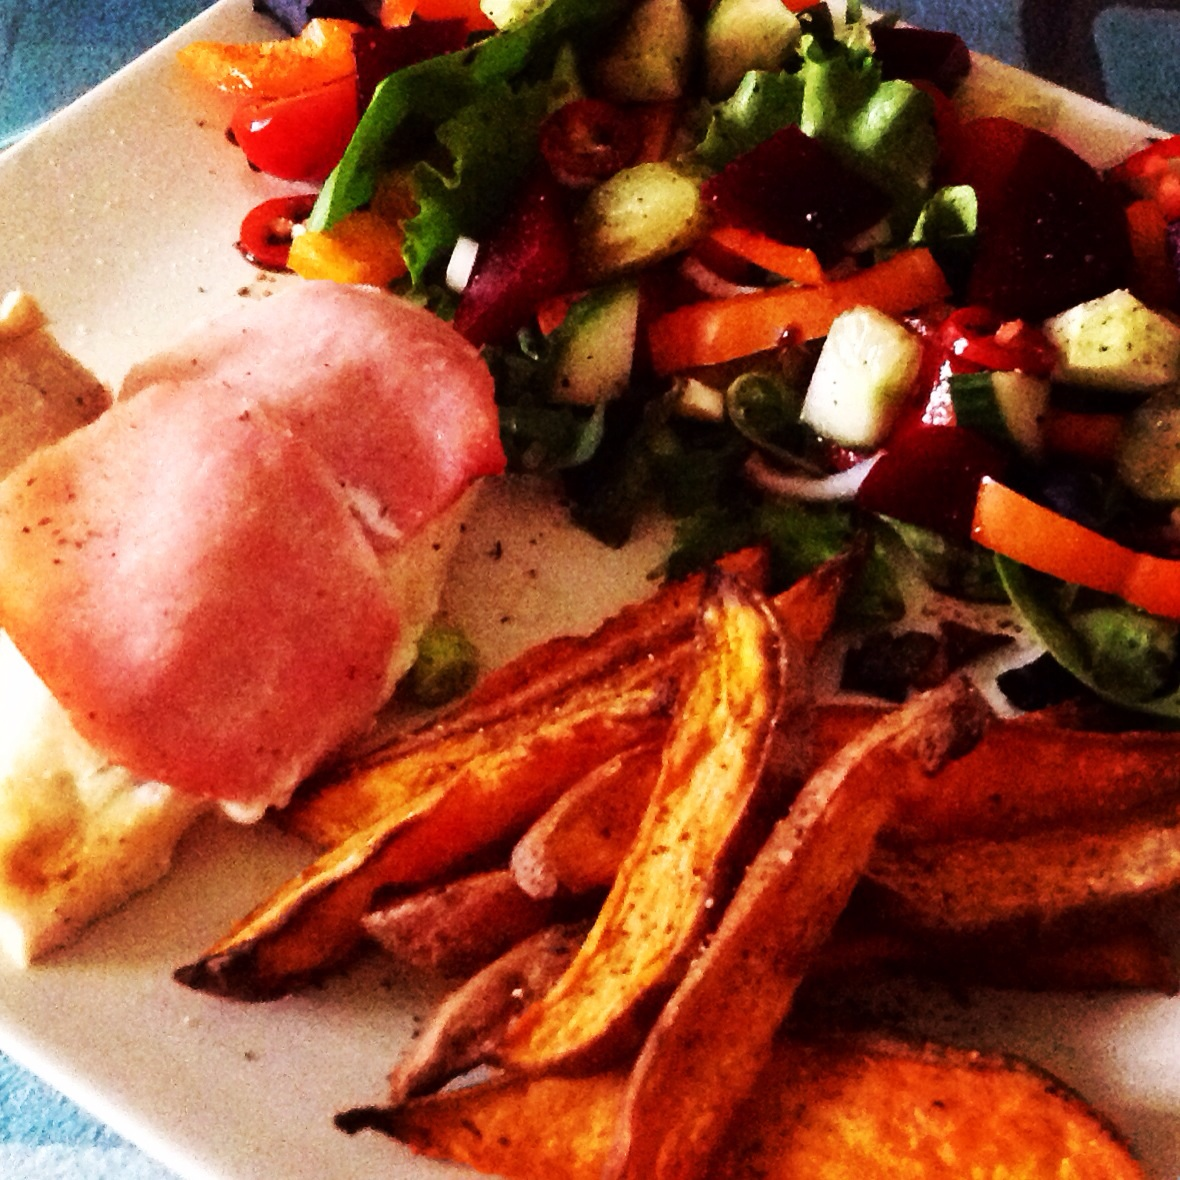 chicken stuffed with quark and garlic wrapped in bacon sweet potato